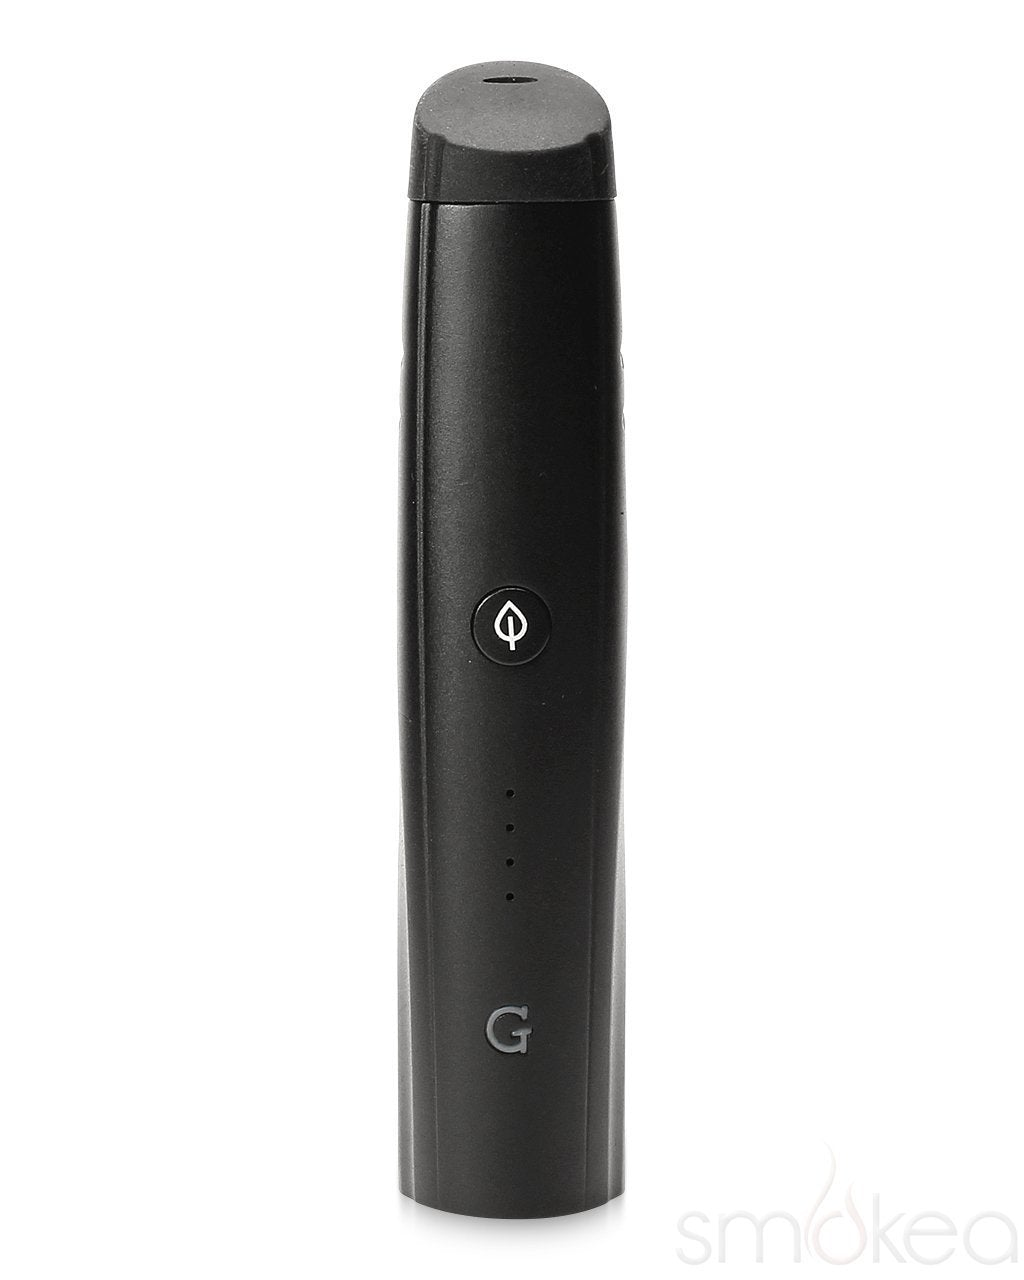 Grenco Science G Pen Pro Vaporizer - SMOKEA